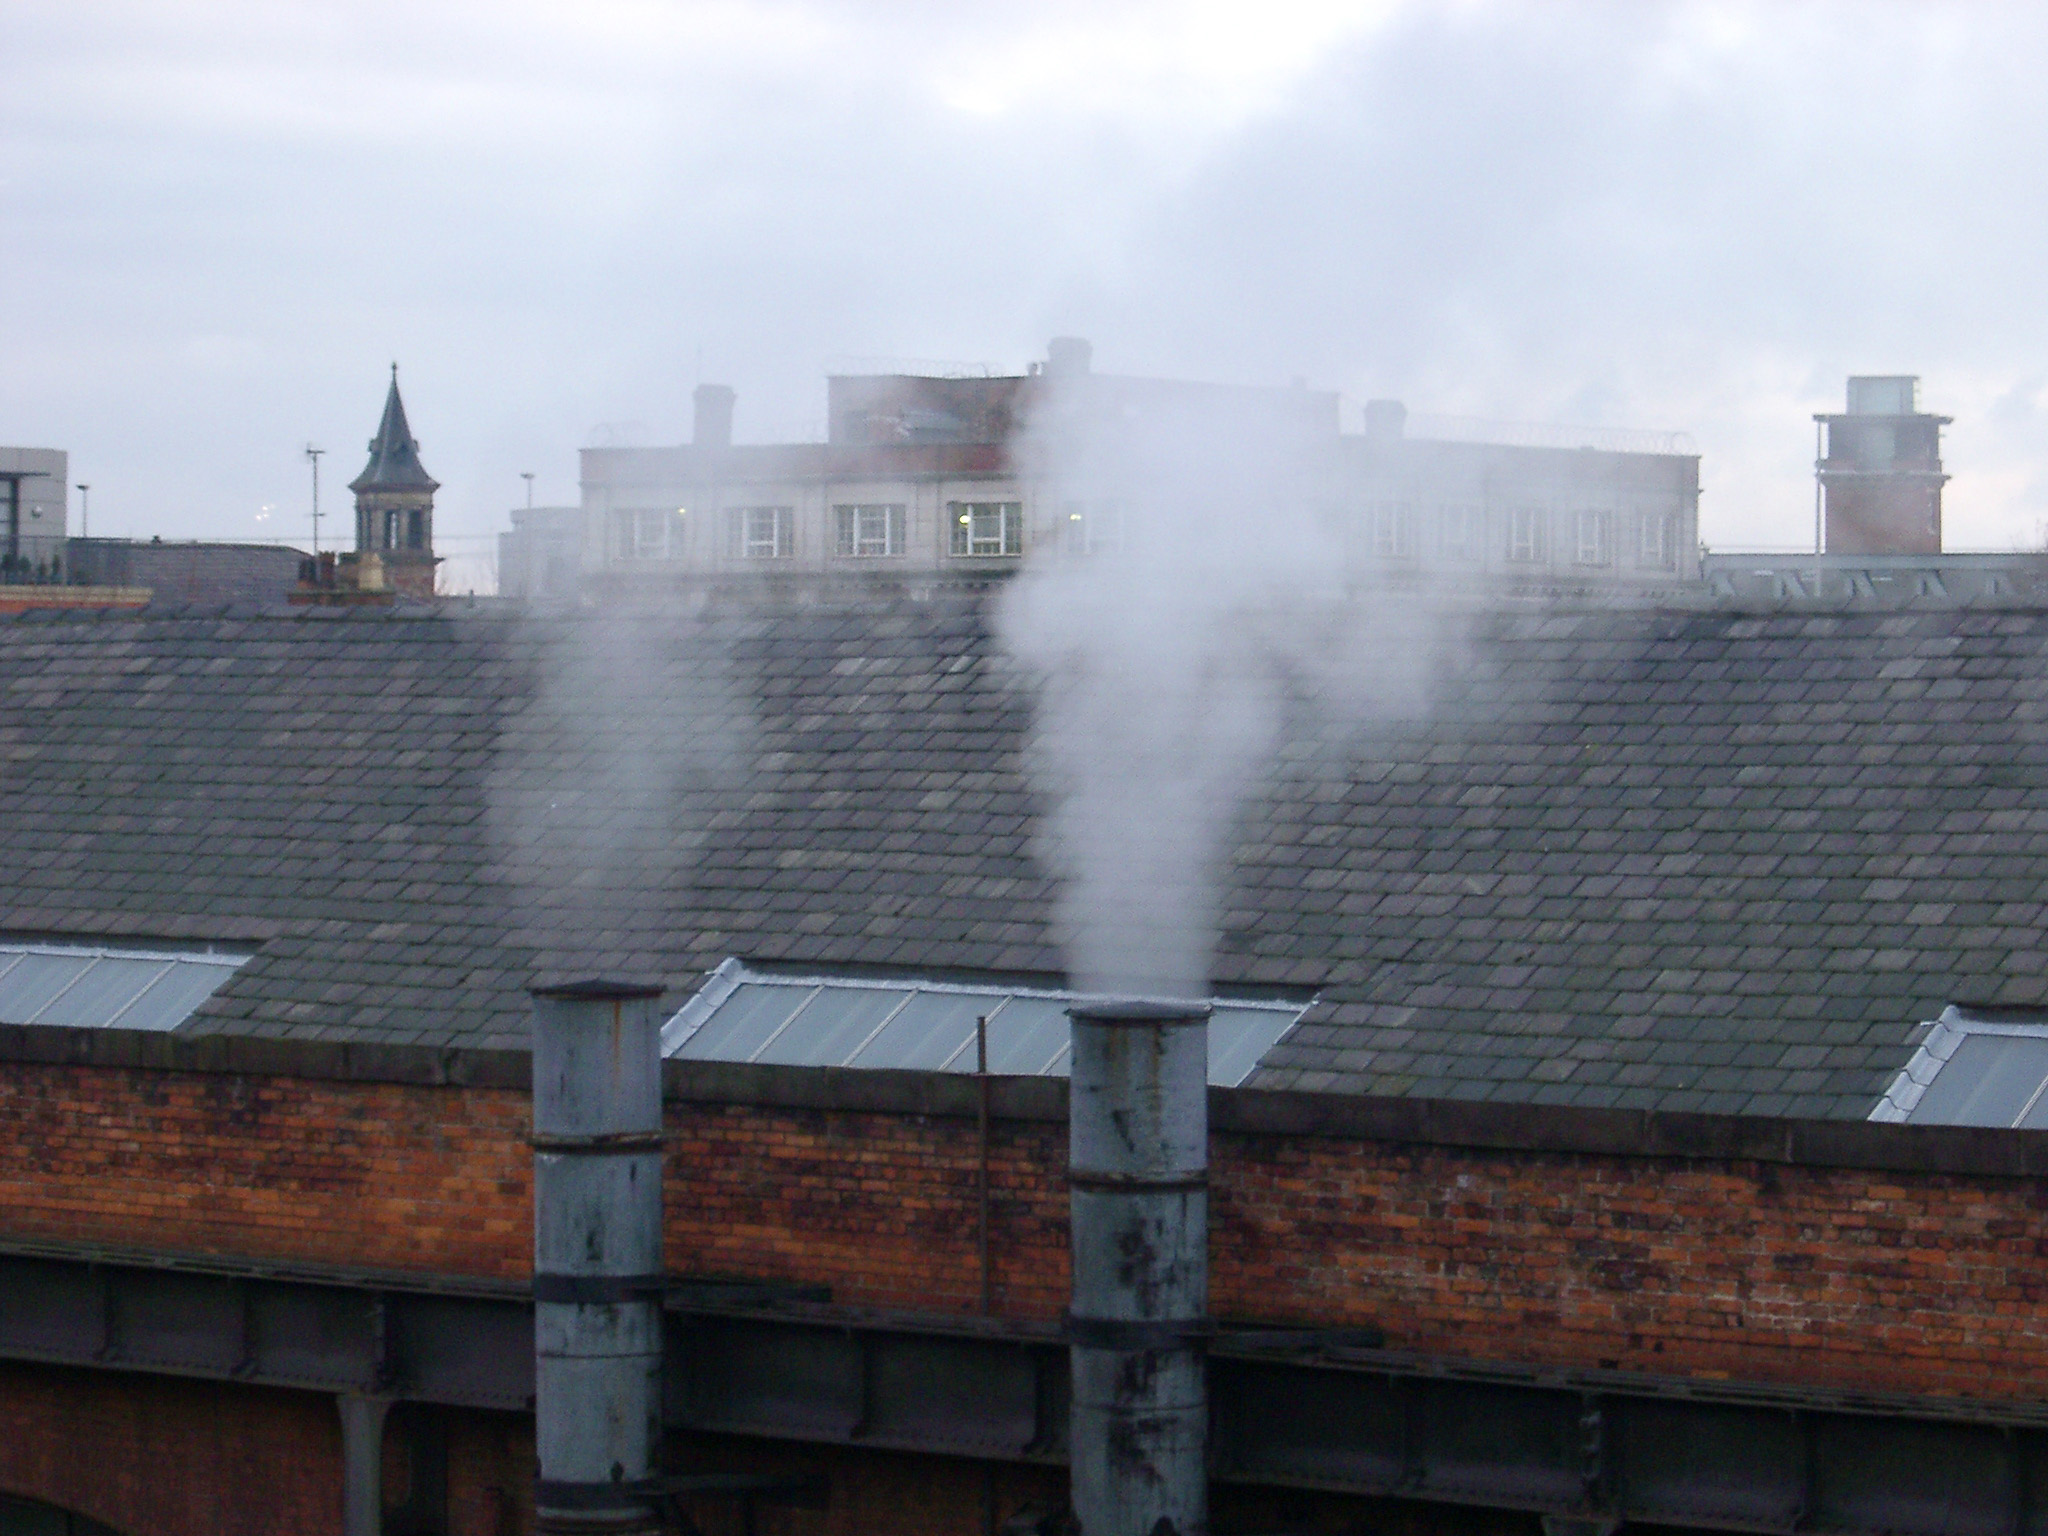 Two factory smoke stacks spewing steam into the air in industrial Manchester at the MOSI museum, Lancashire, England